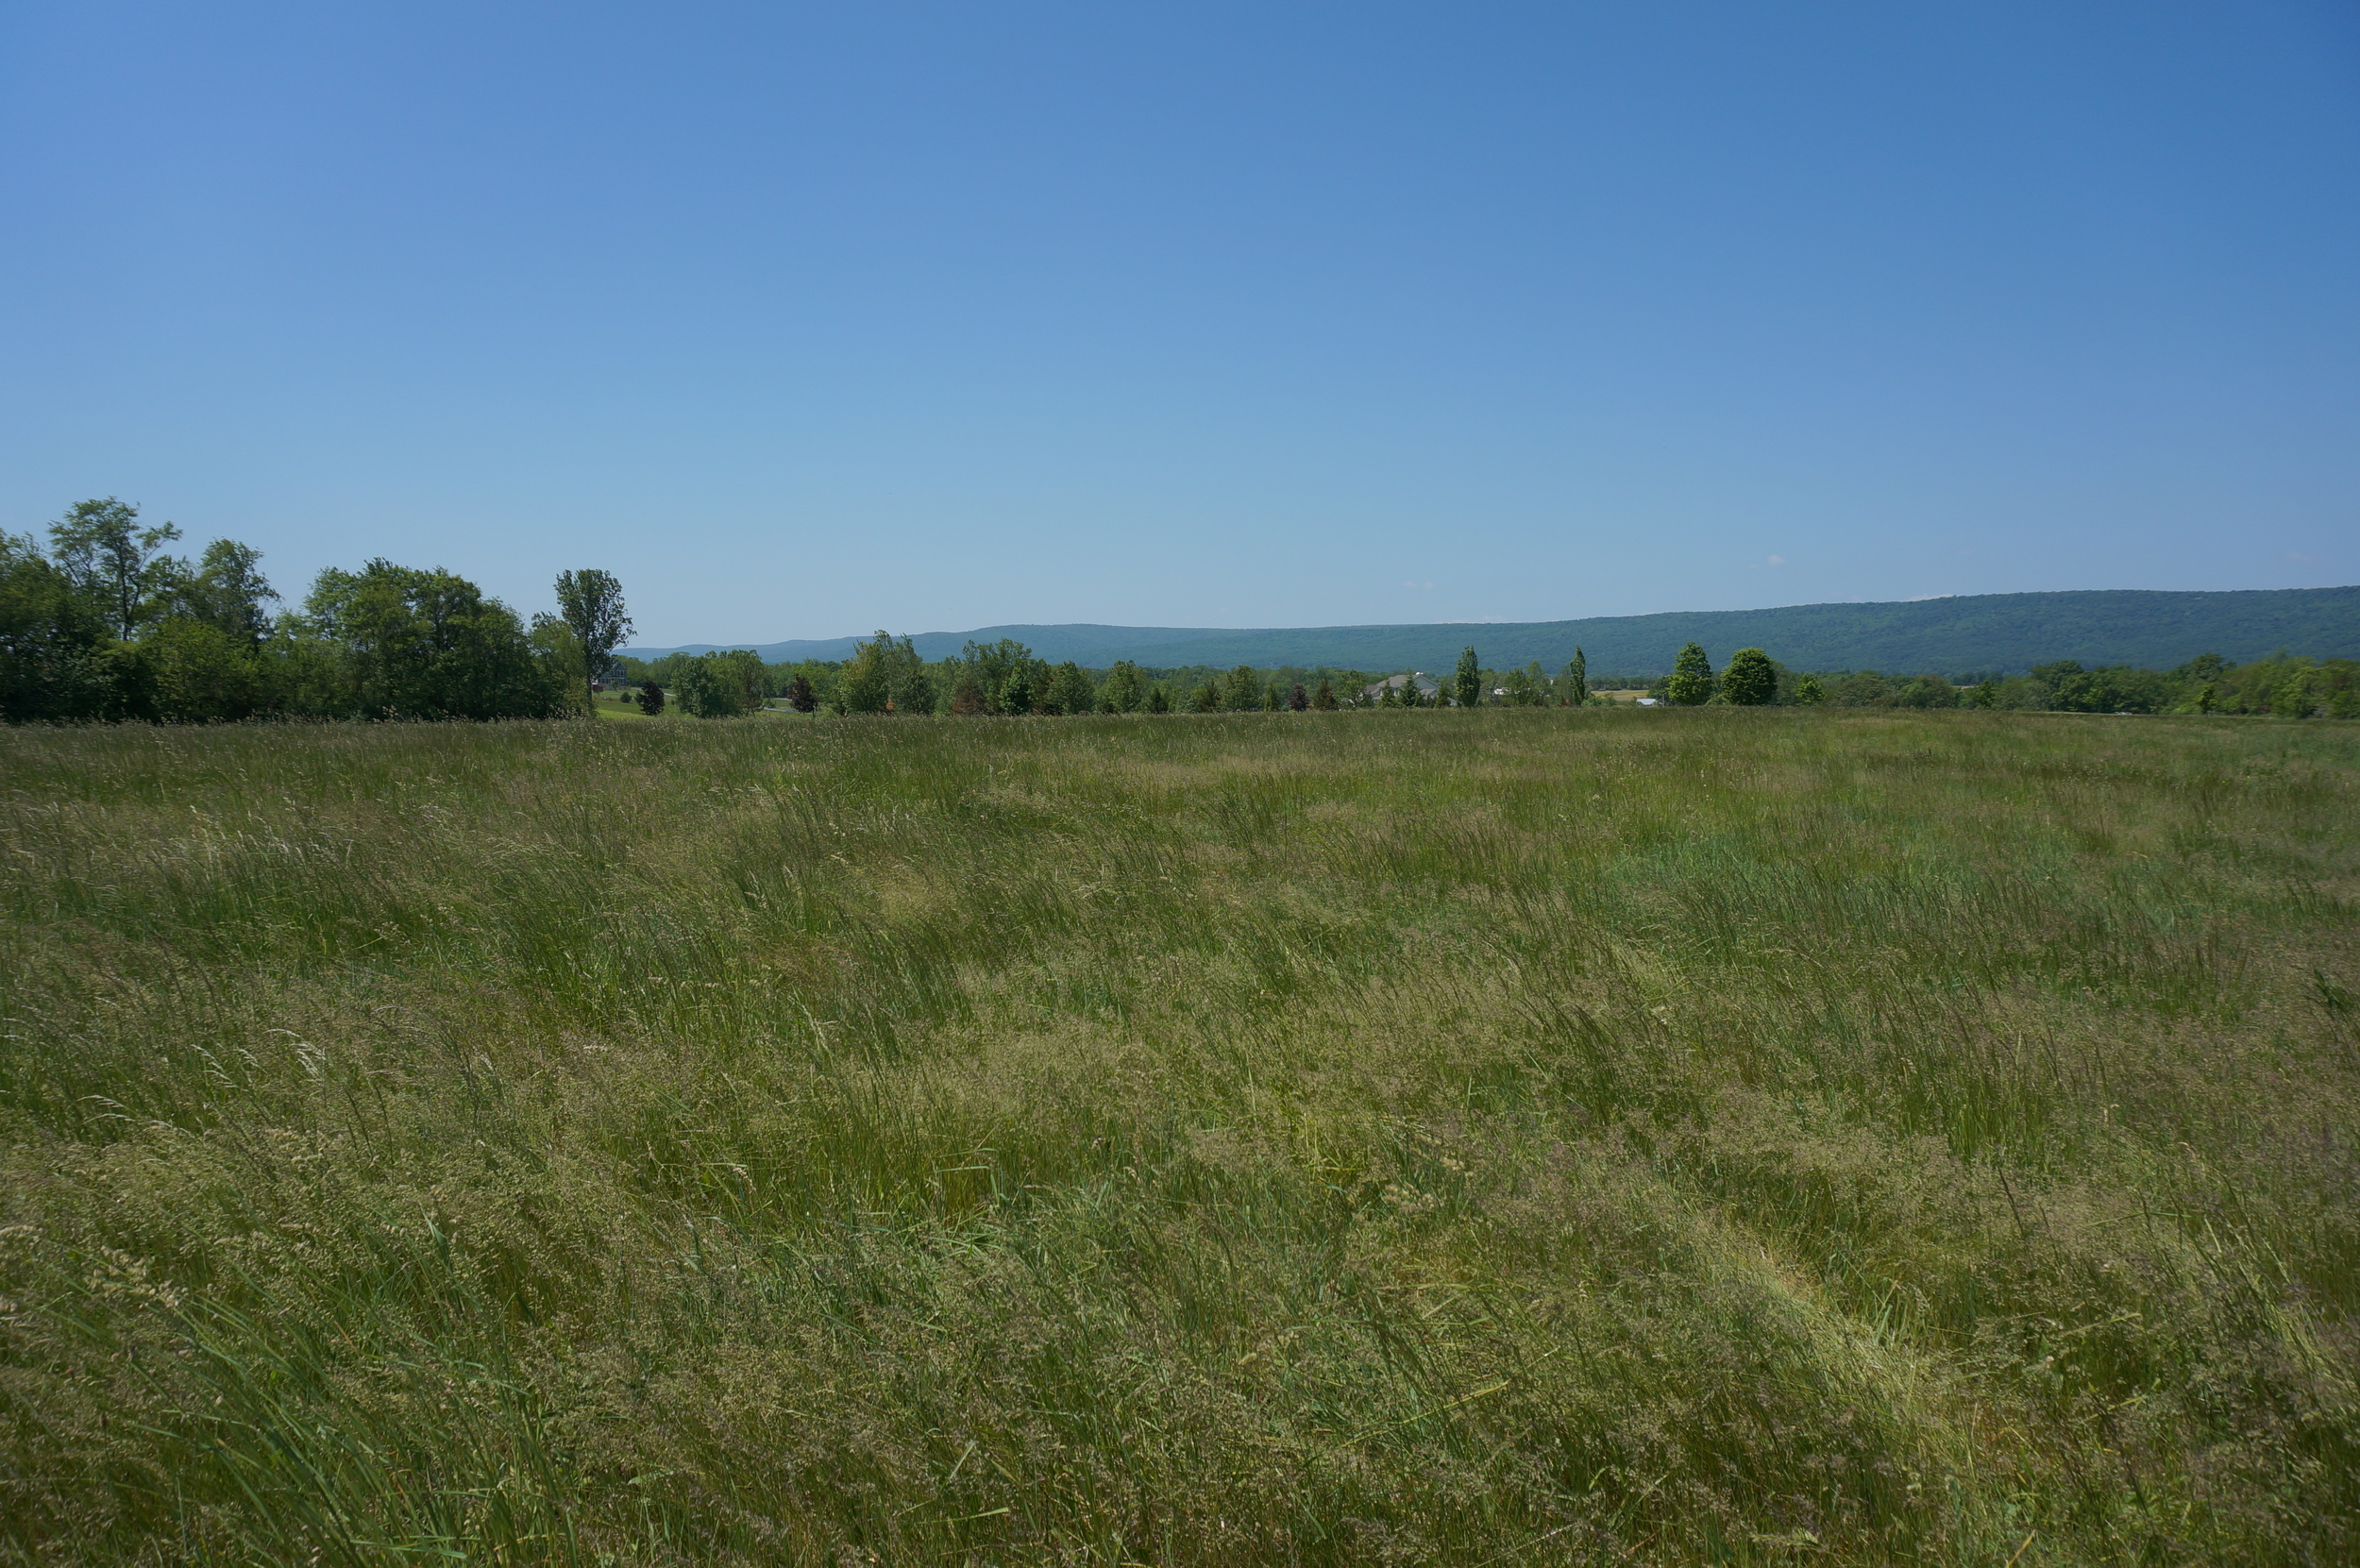 The view from Potomac Sprout's headquarters, west lies the Catoctin mountain range .